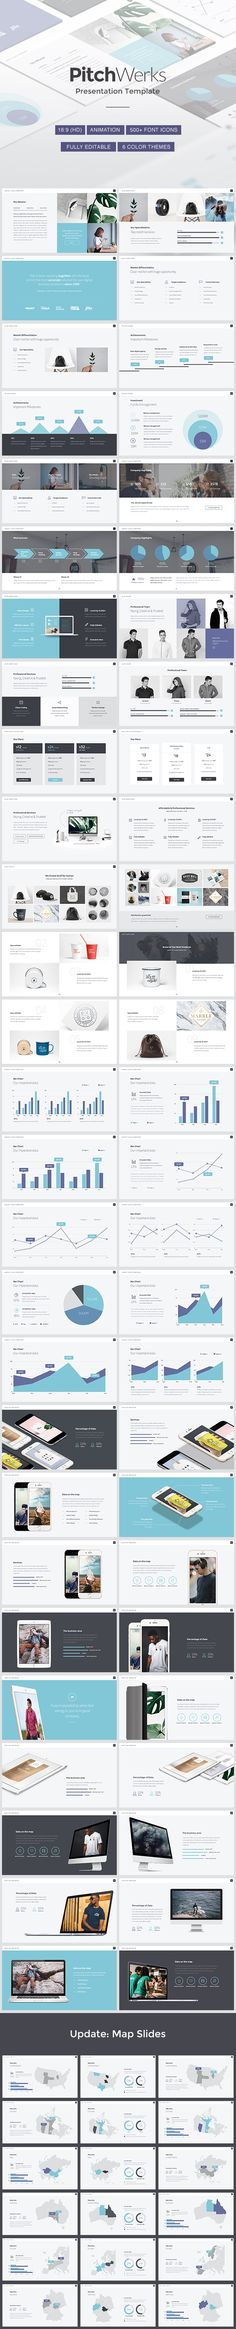 Professional Pitch Powerpoint Template